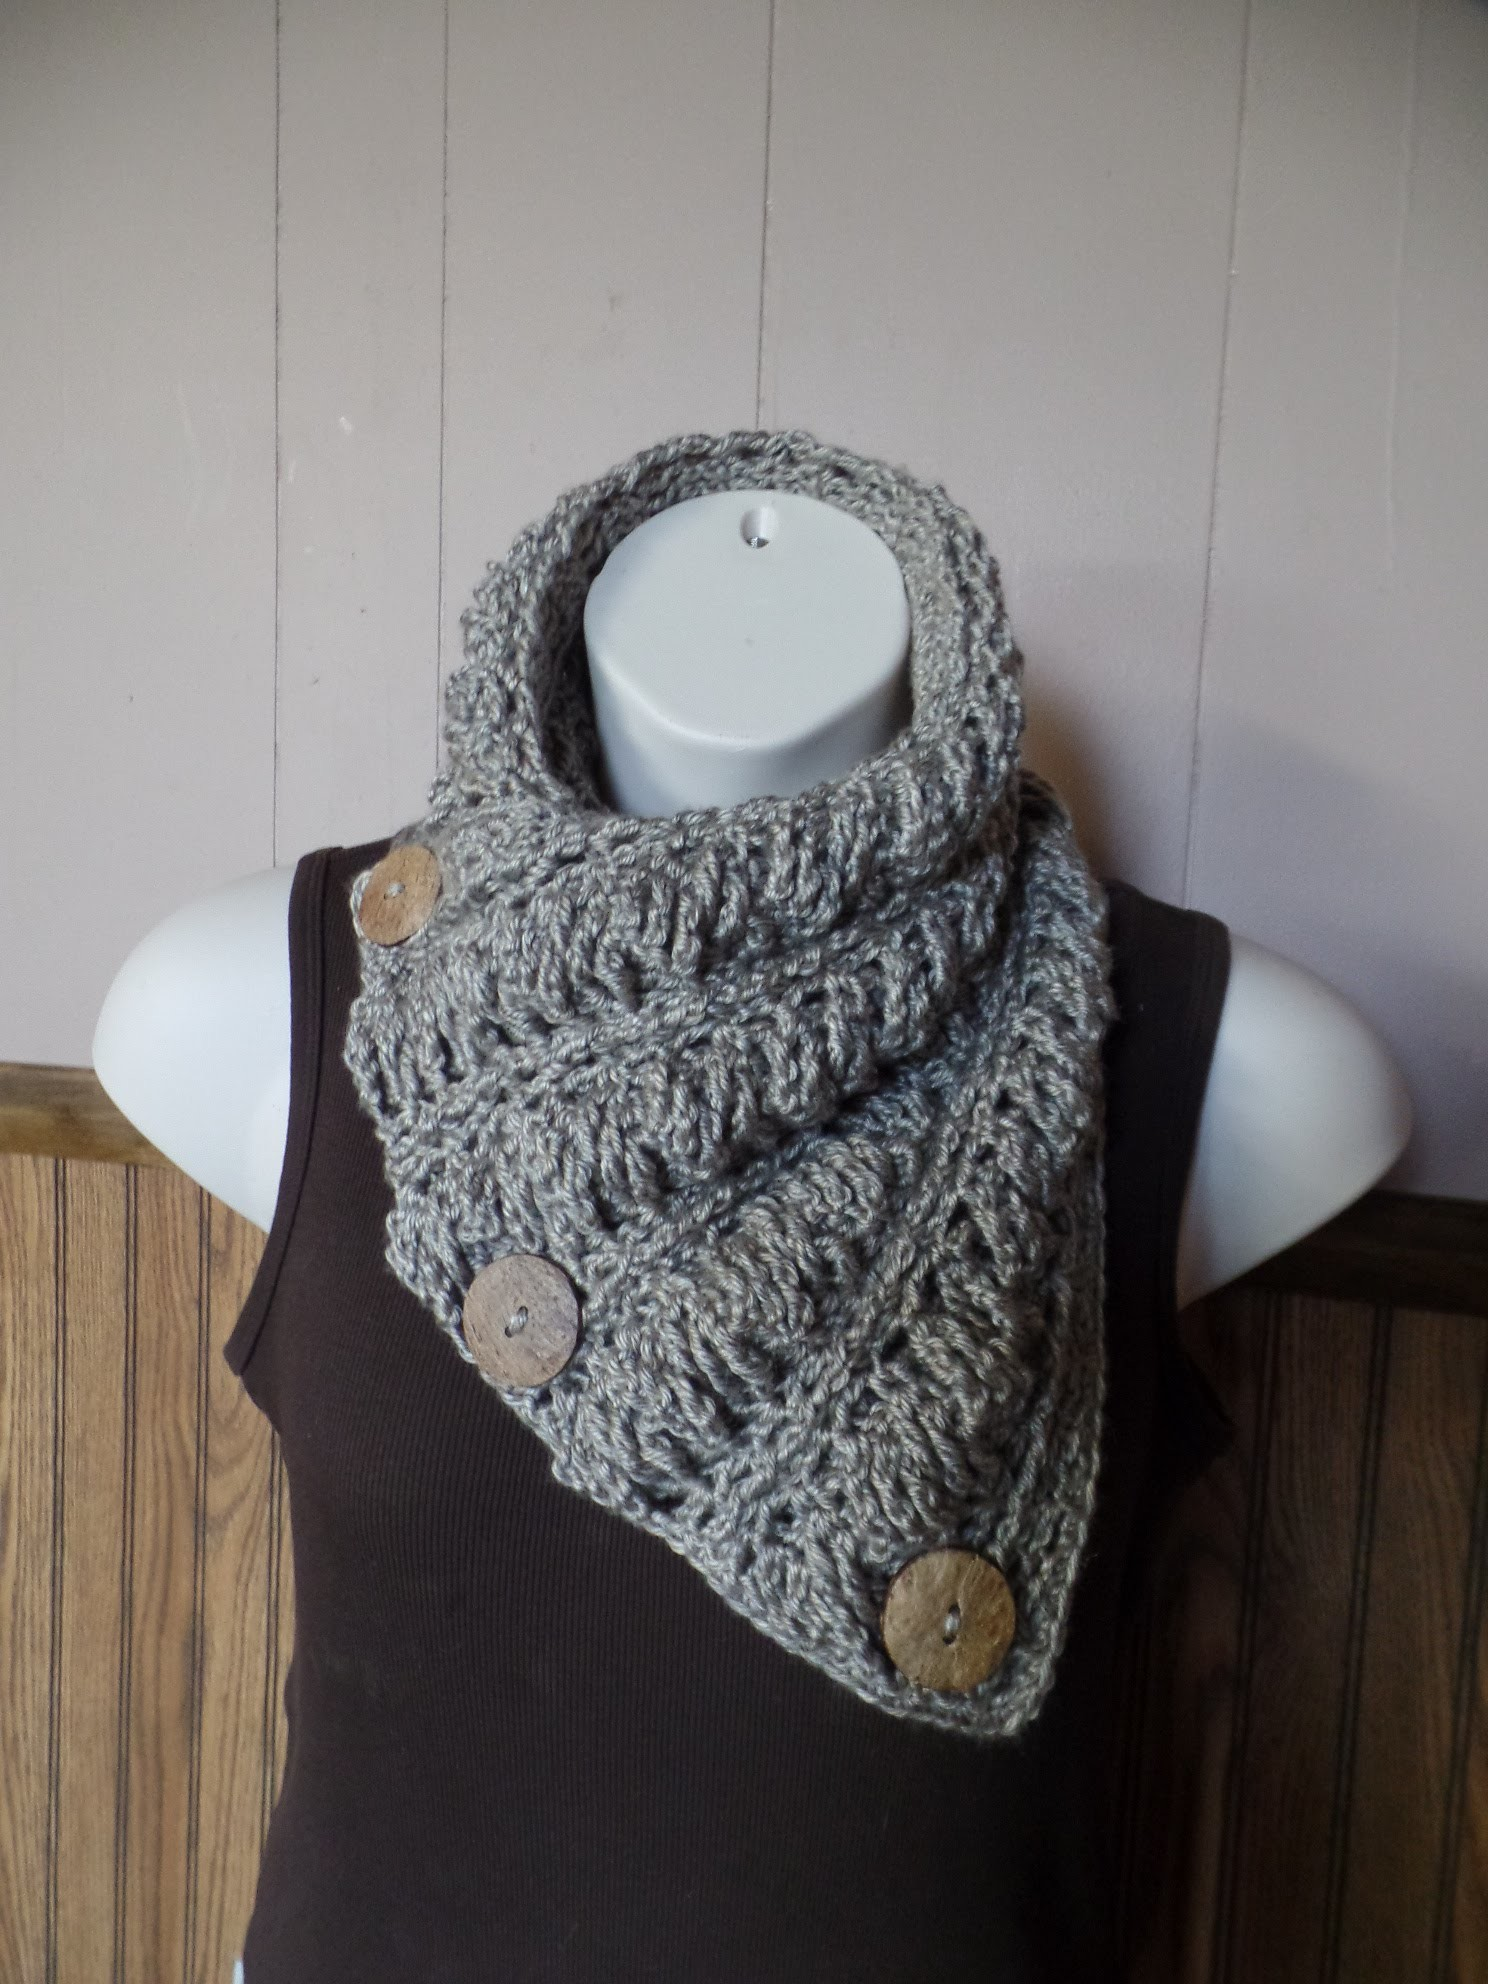 #Crochet Gwenyths Cable Stitch Button Cowl Wrap Scarf #TUTORIAL